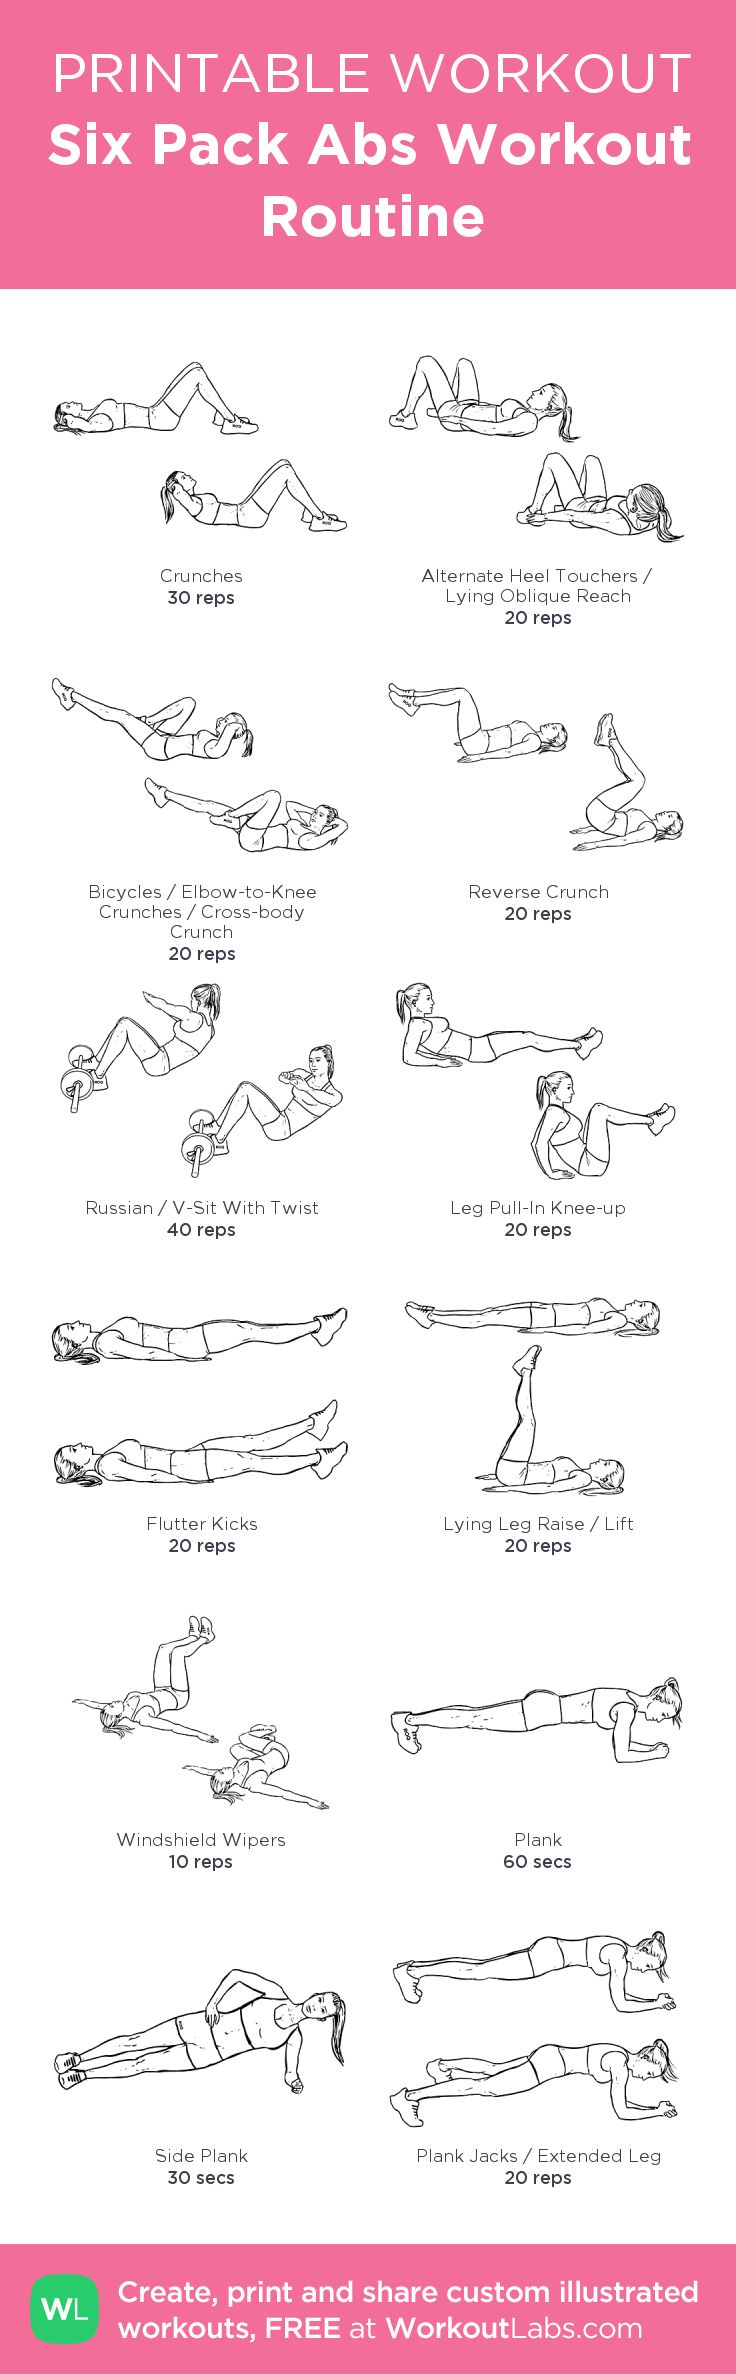 Six Pack Abs Workout Routine – my custom workout created at WorkoutLabs.com • Click through to download as printable PDF! #customworkout